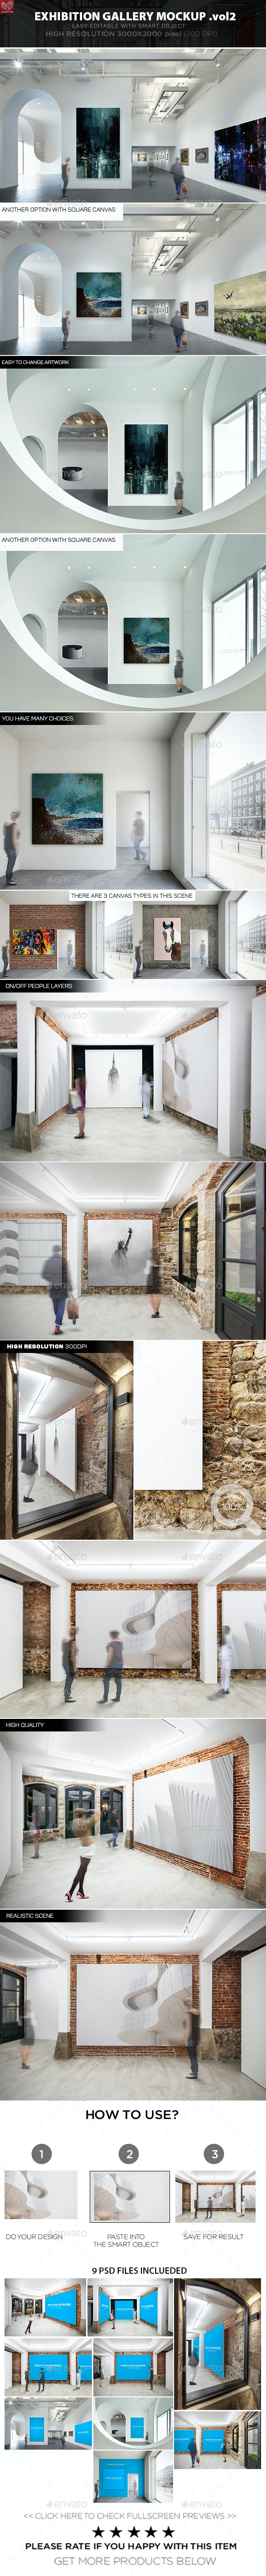 Exhibition Gallery Mockup v.2 - Posters Print